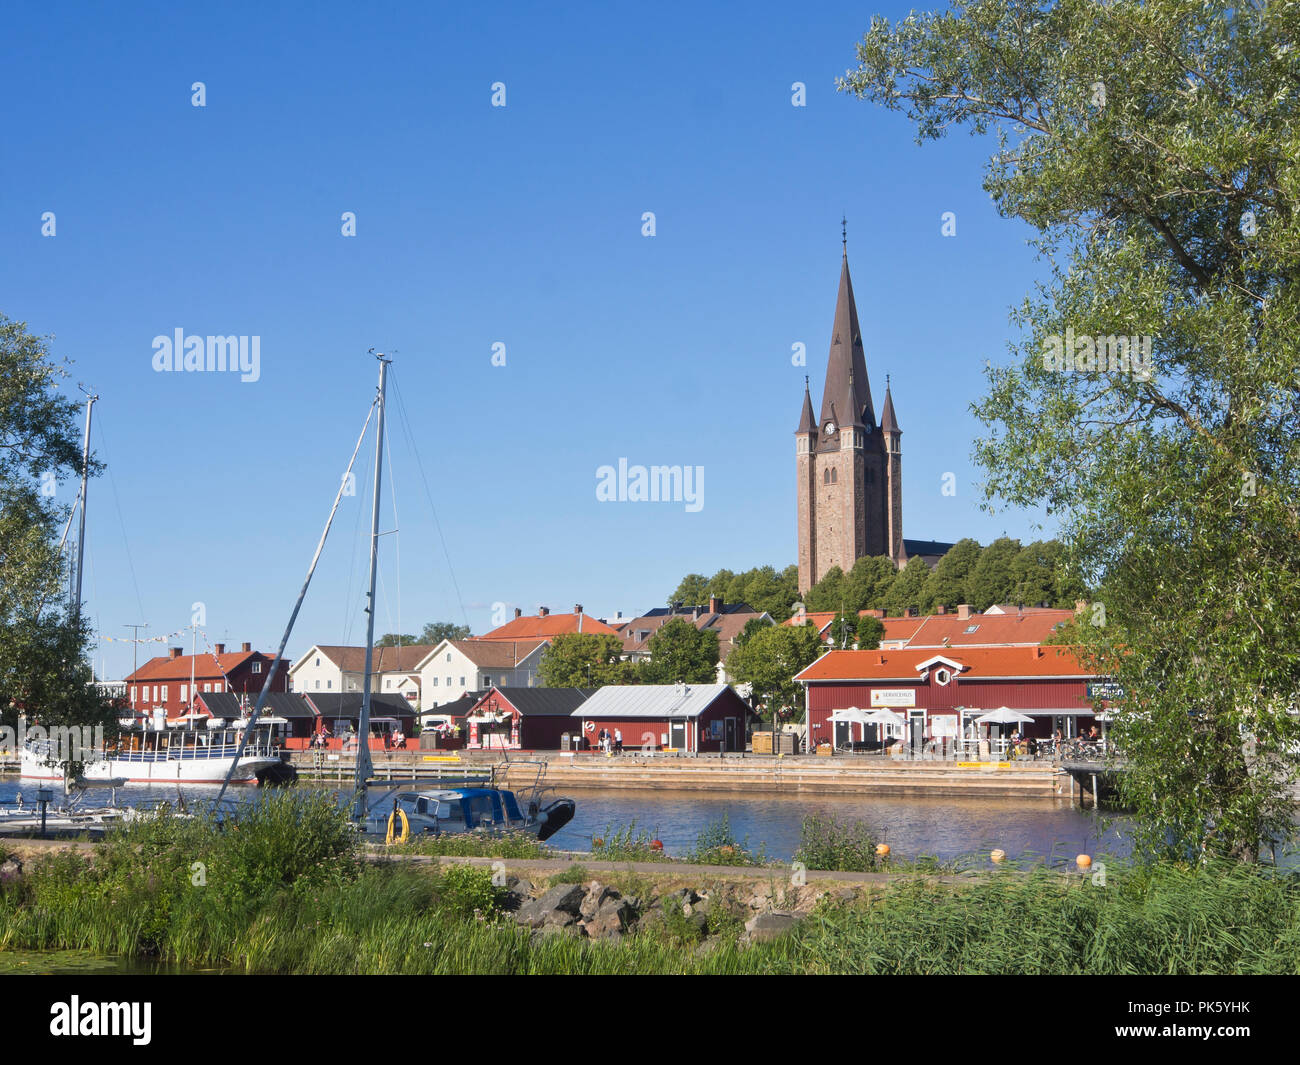 The harbour with restaurants and the cathedral spire in Mariestad, a picturesque town on the shore of Vaenern the largest lake in Sweden - Stock Image